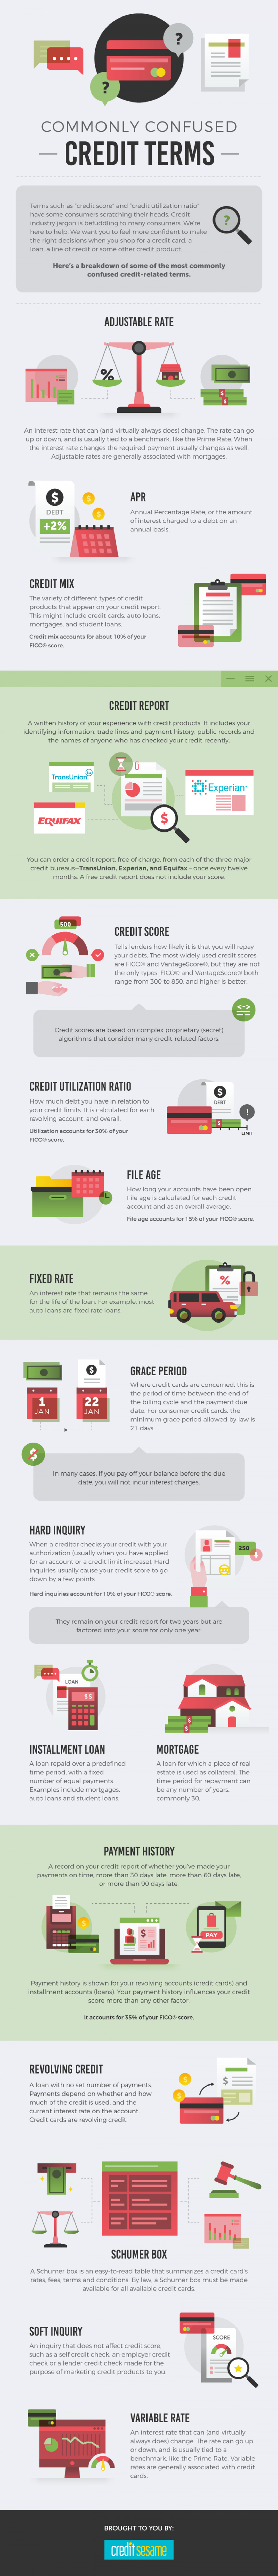 Commonly Confused Credit Terms  Infographic